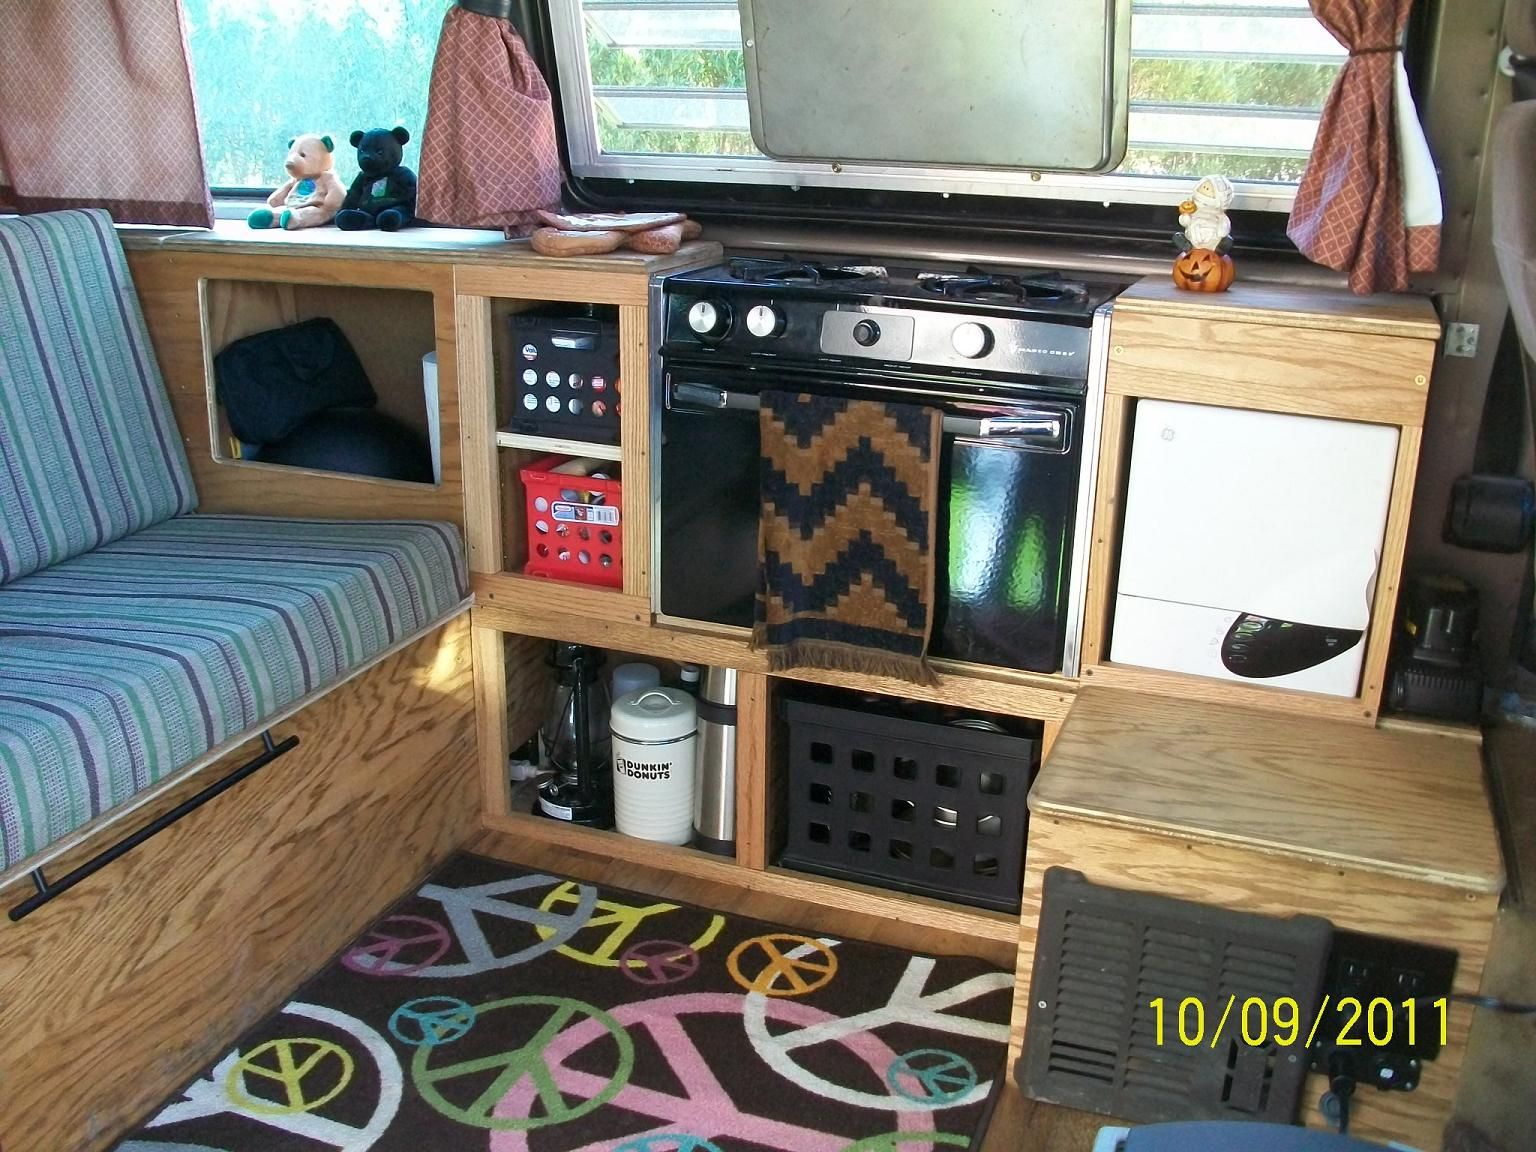 Volkswagen bus vanagon take a look volkswagon new interior run and - Oven Microwave And Furnace Showing Baking Sheet Protecting Screen On Jealousy Window Can Be Used For Baking Picture Taken At Transporterfest In Boston